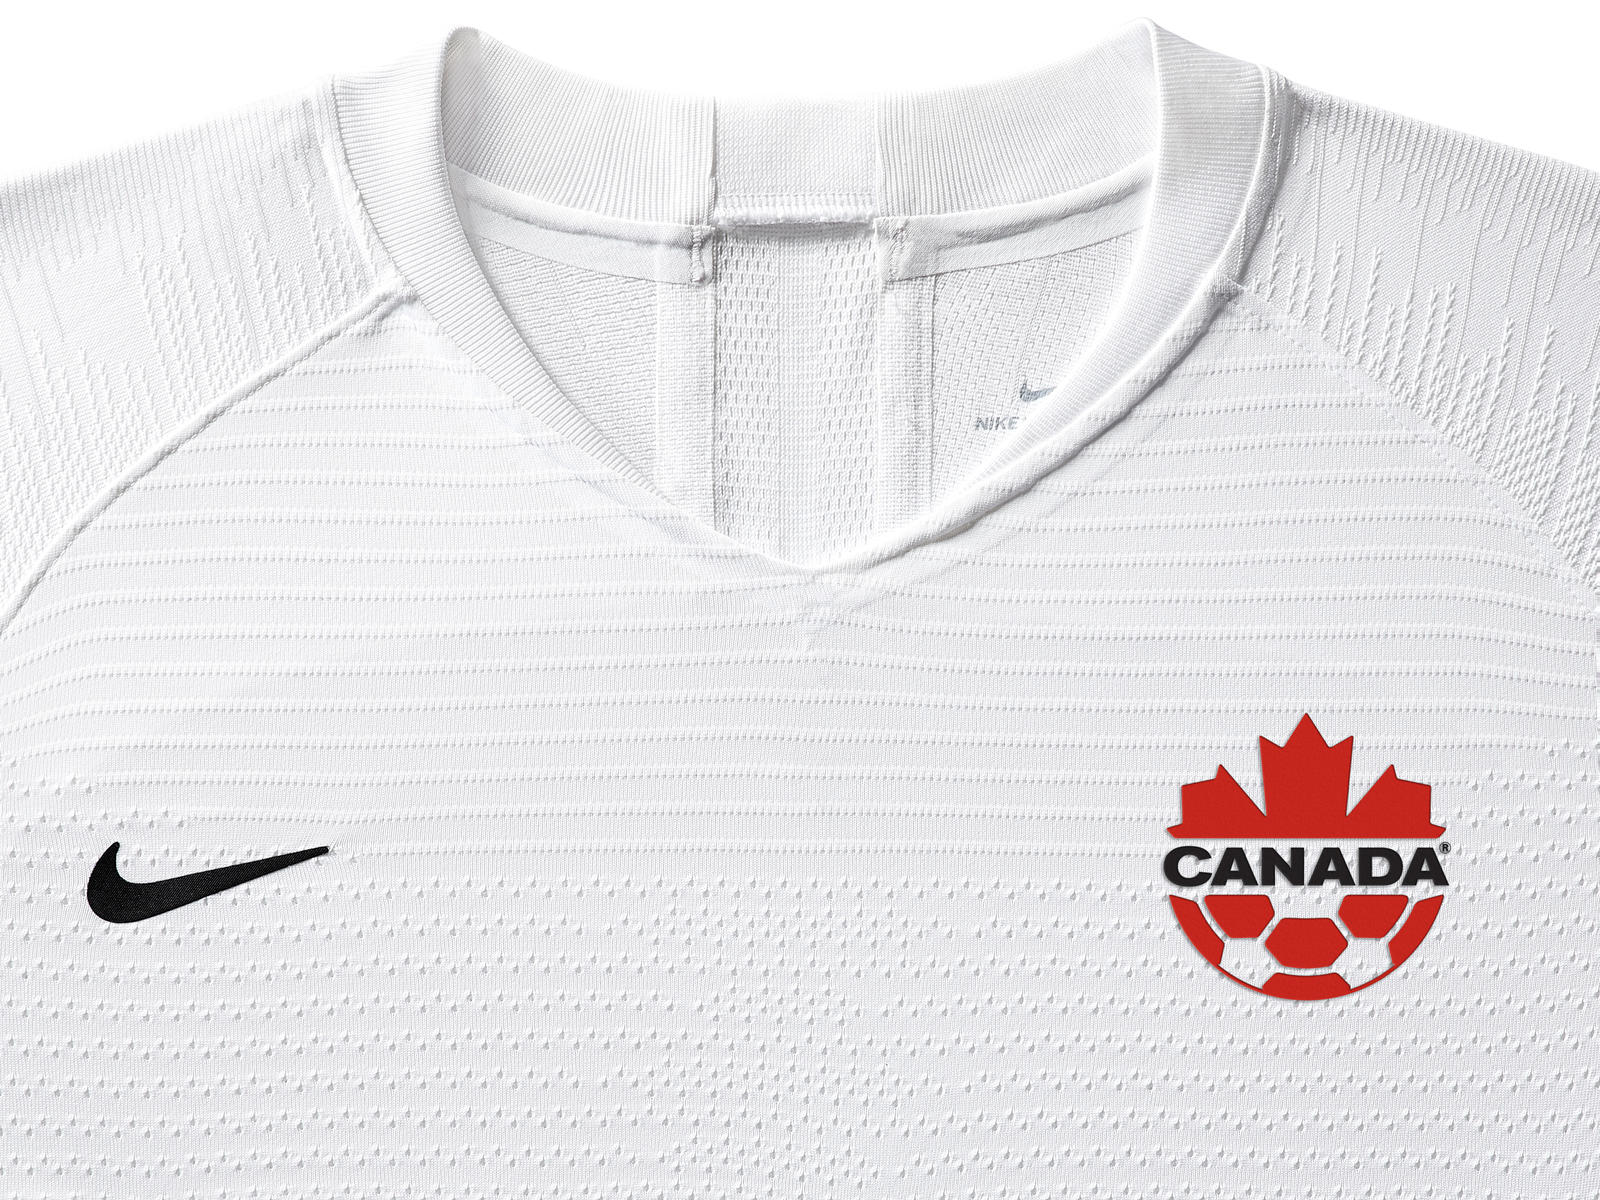 canada-national-team-kit-2019-laydown-1_85914.jpg